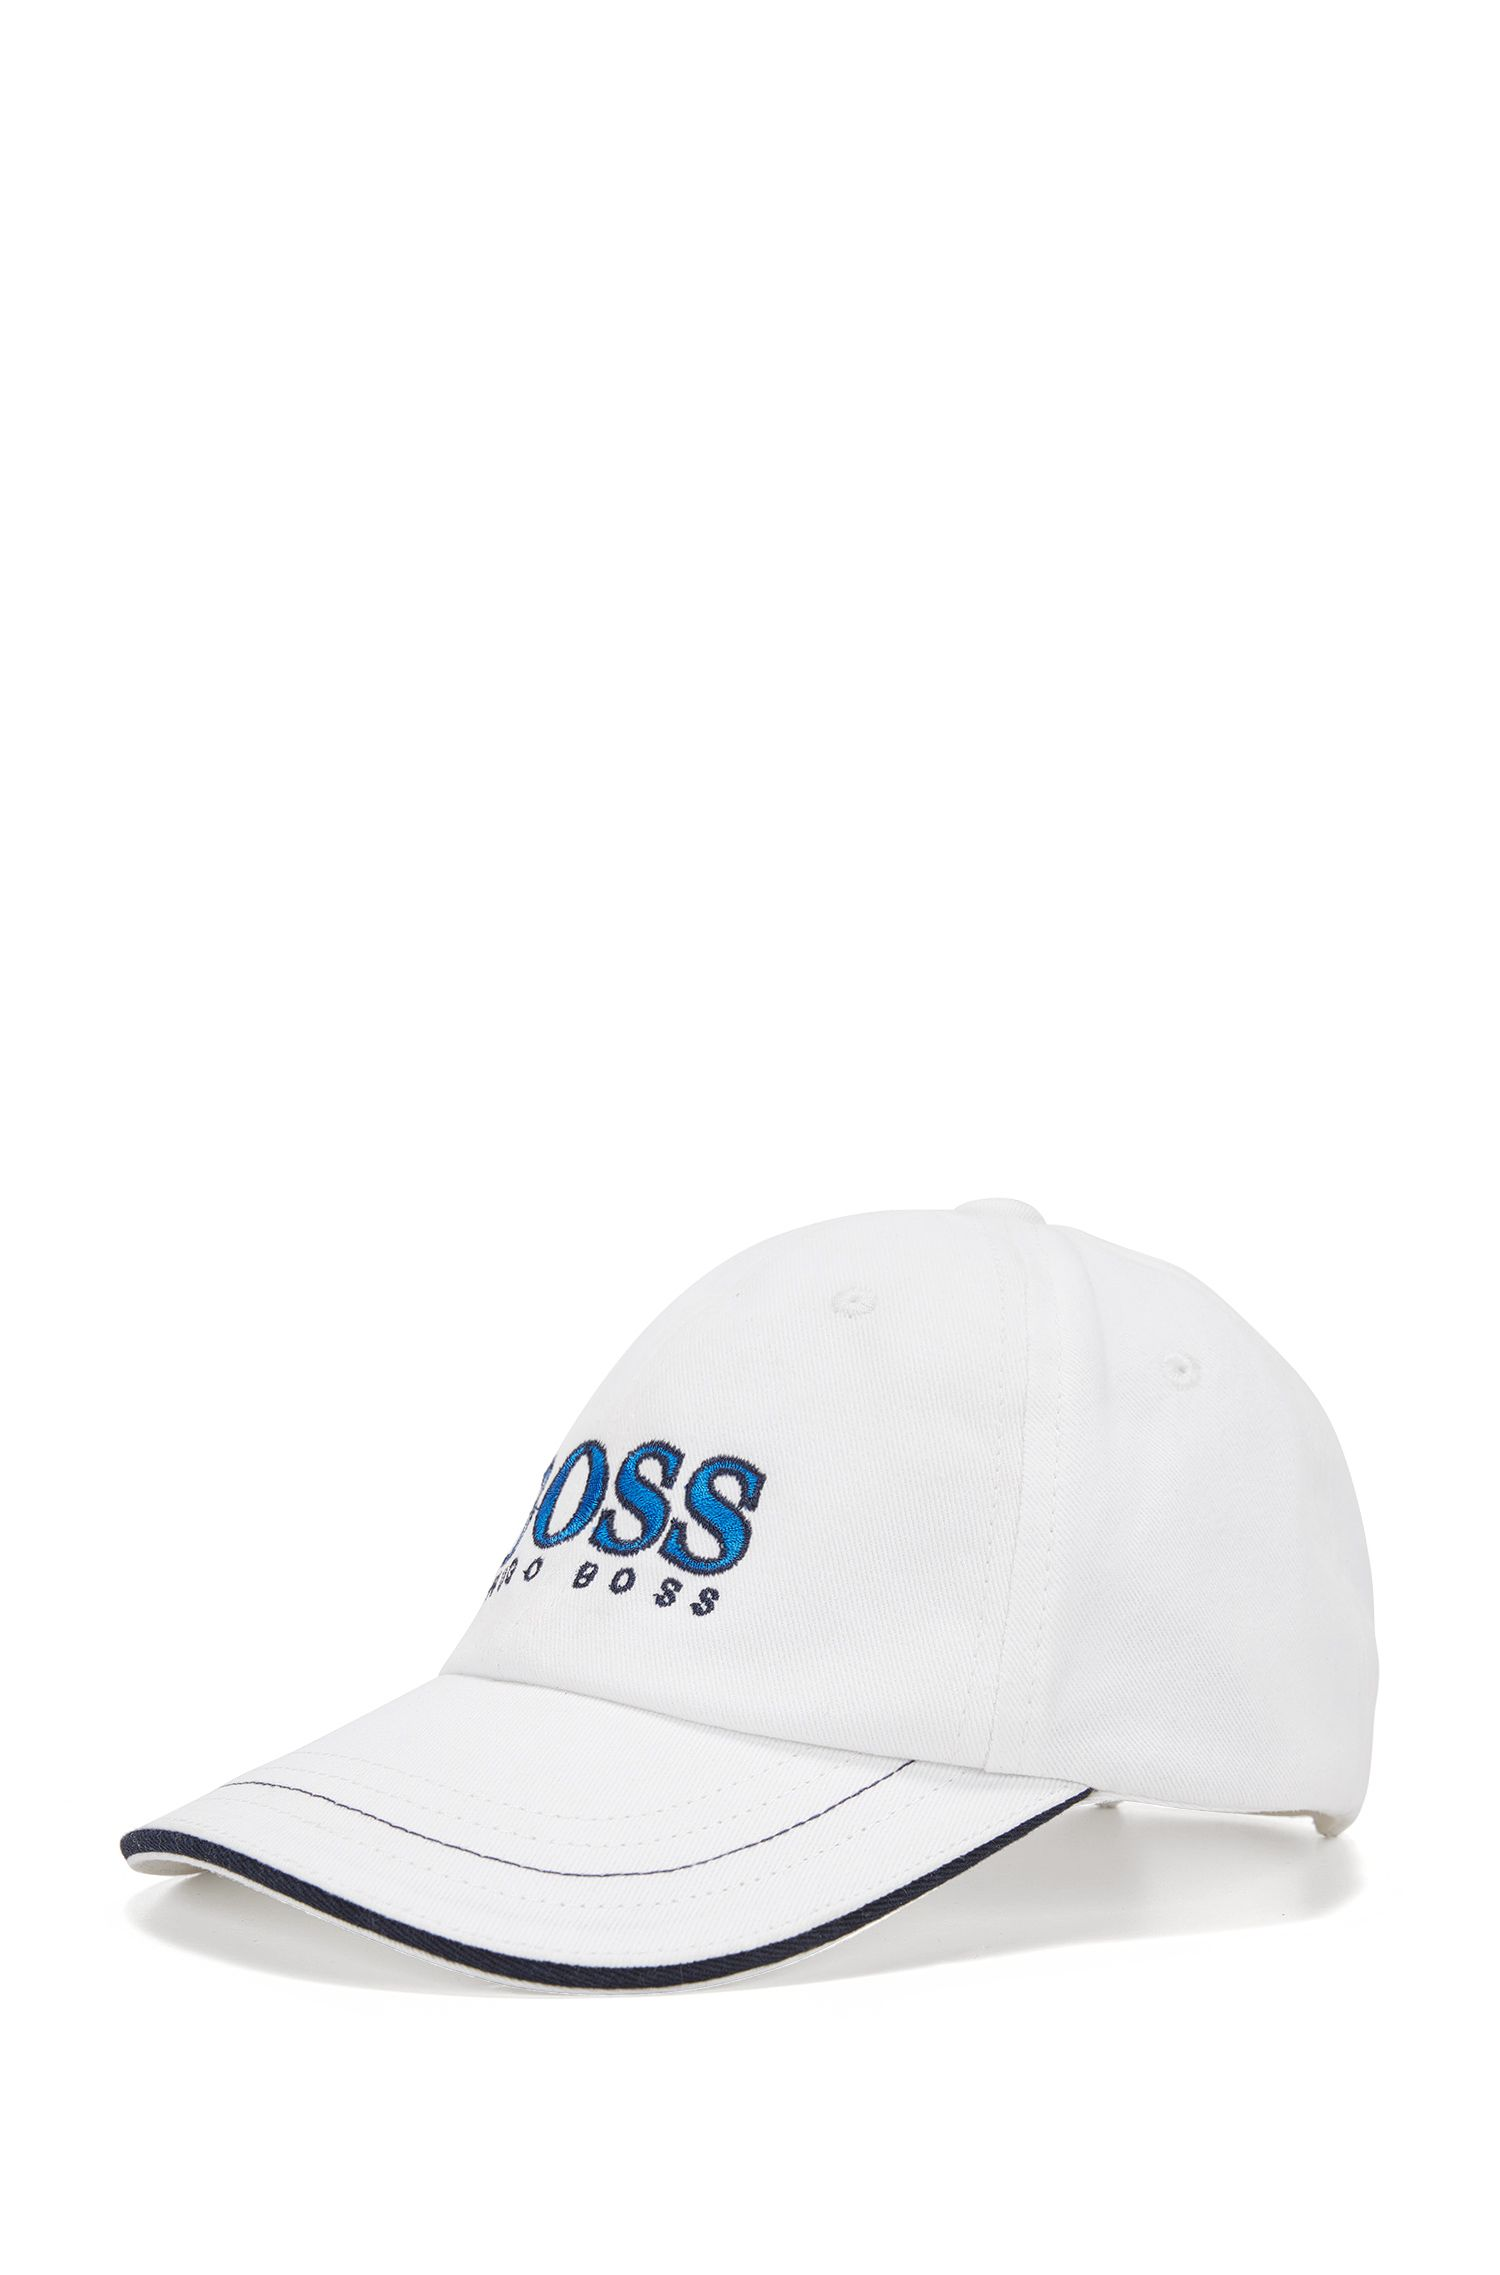 Kids' cap in cotton with large logo: 'J01083'